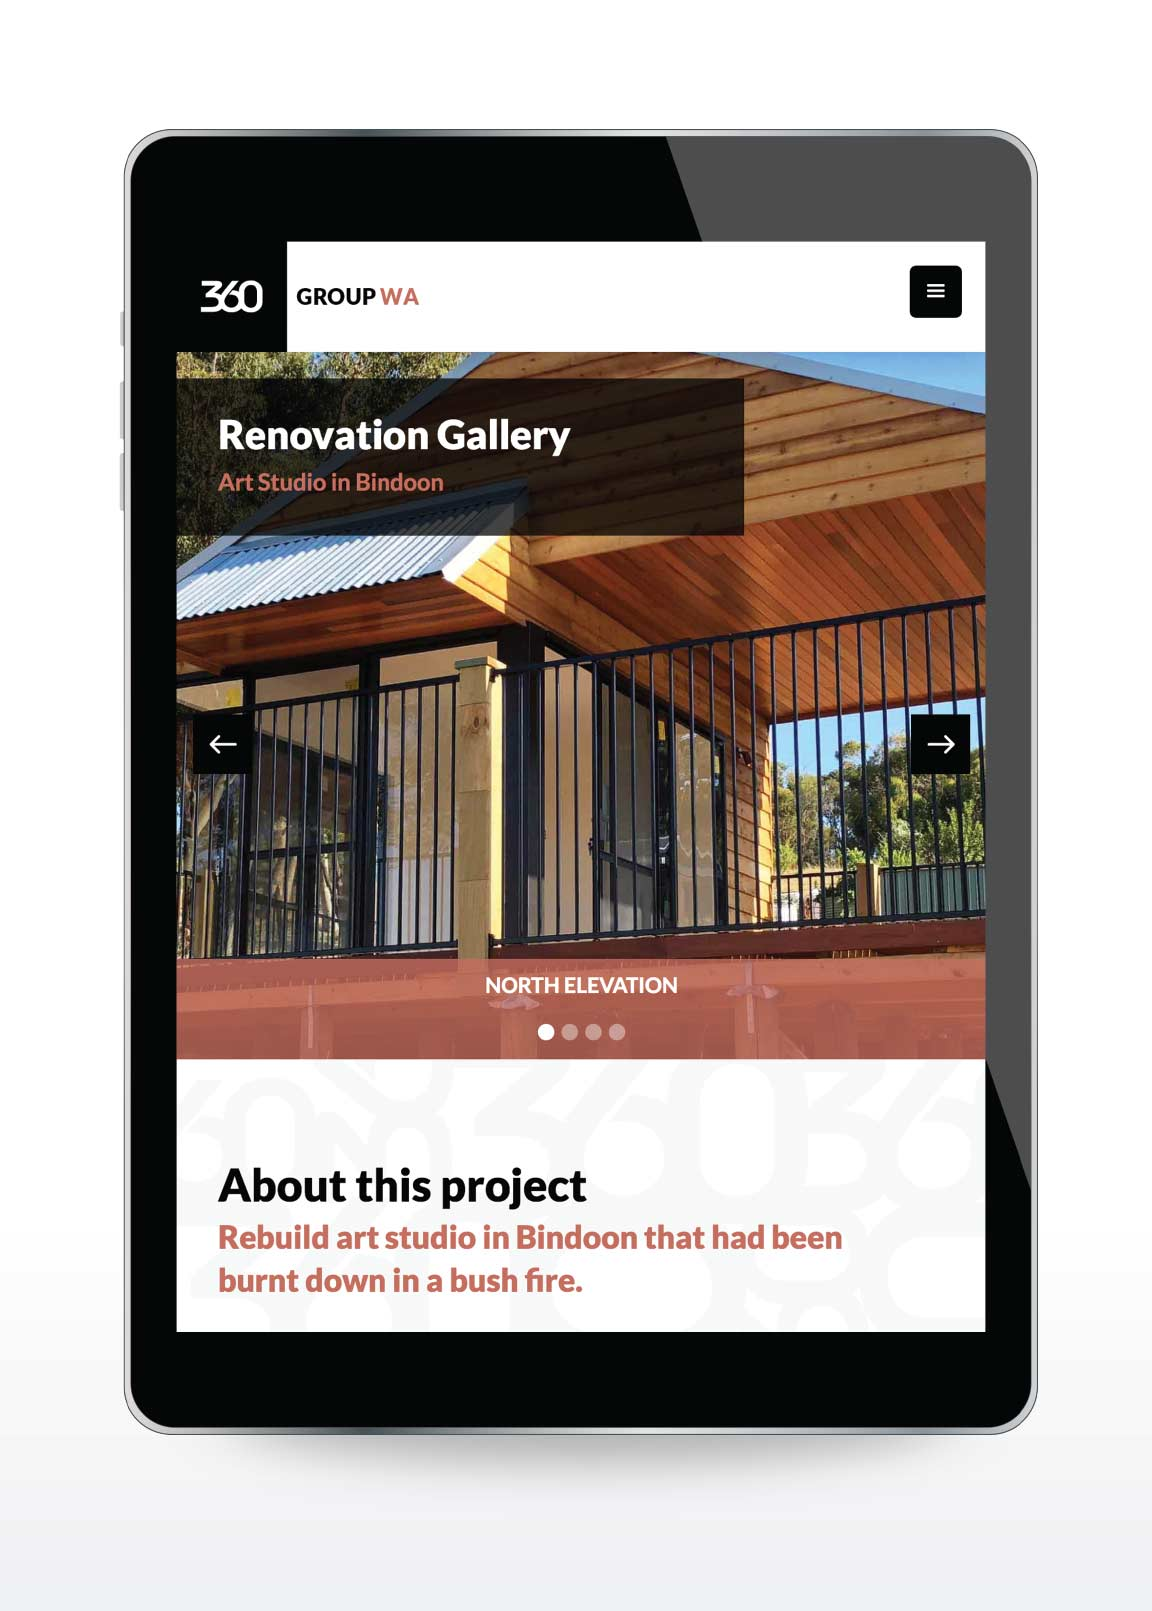 Website design image for 360 Group WA in Perth